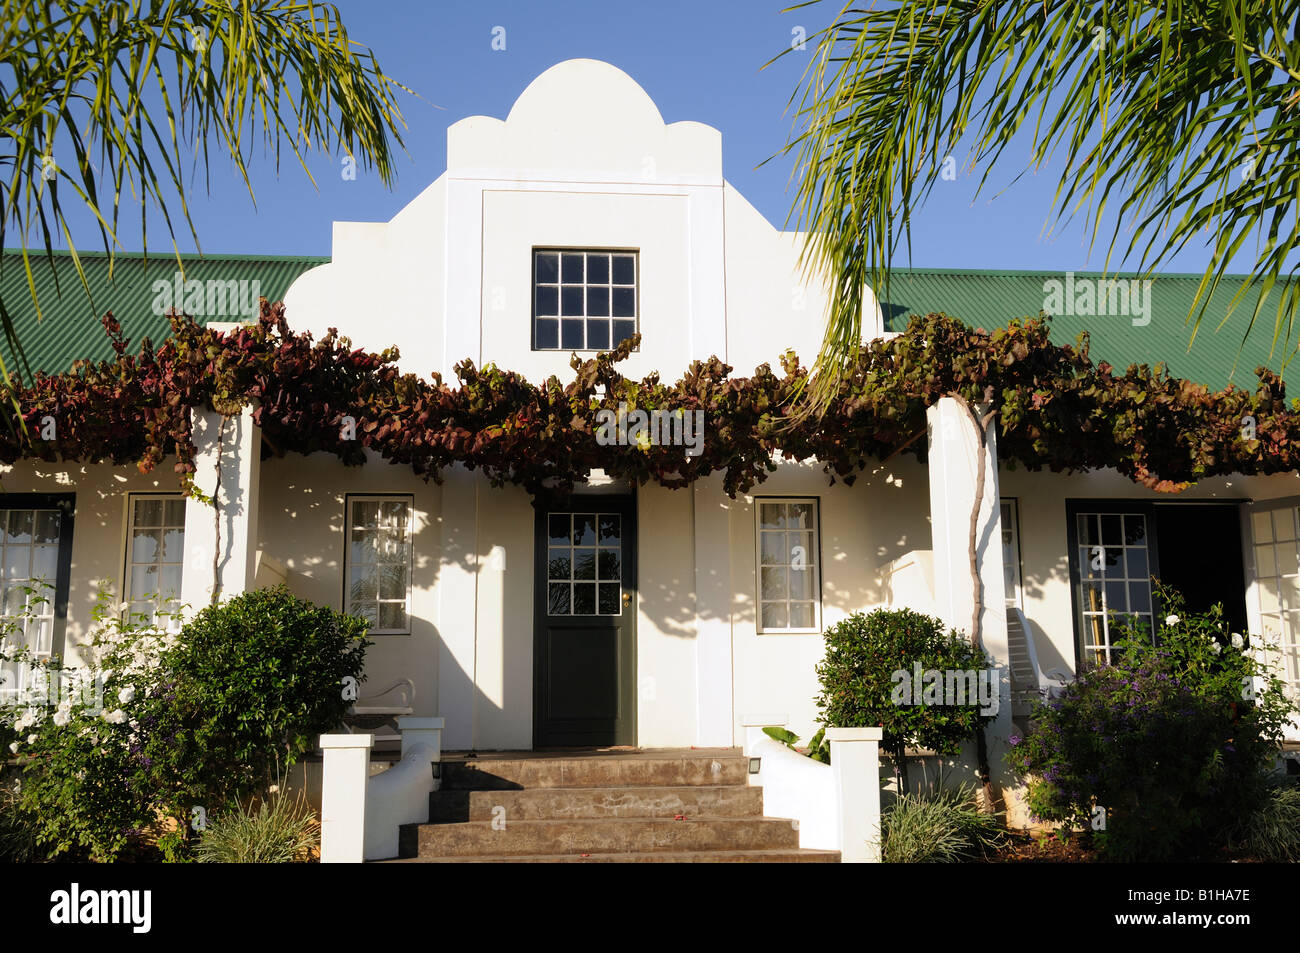 Typical Afrikaans House , Western Cape , South Africa - Stock Image